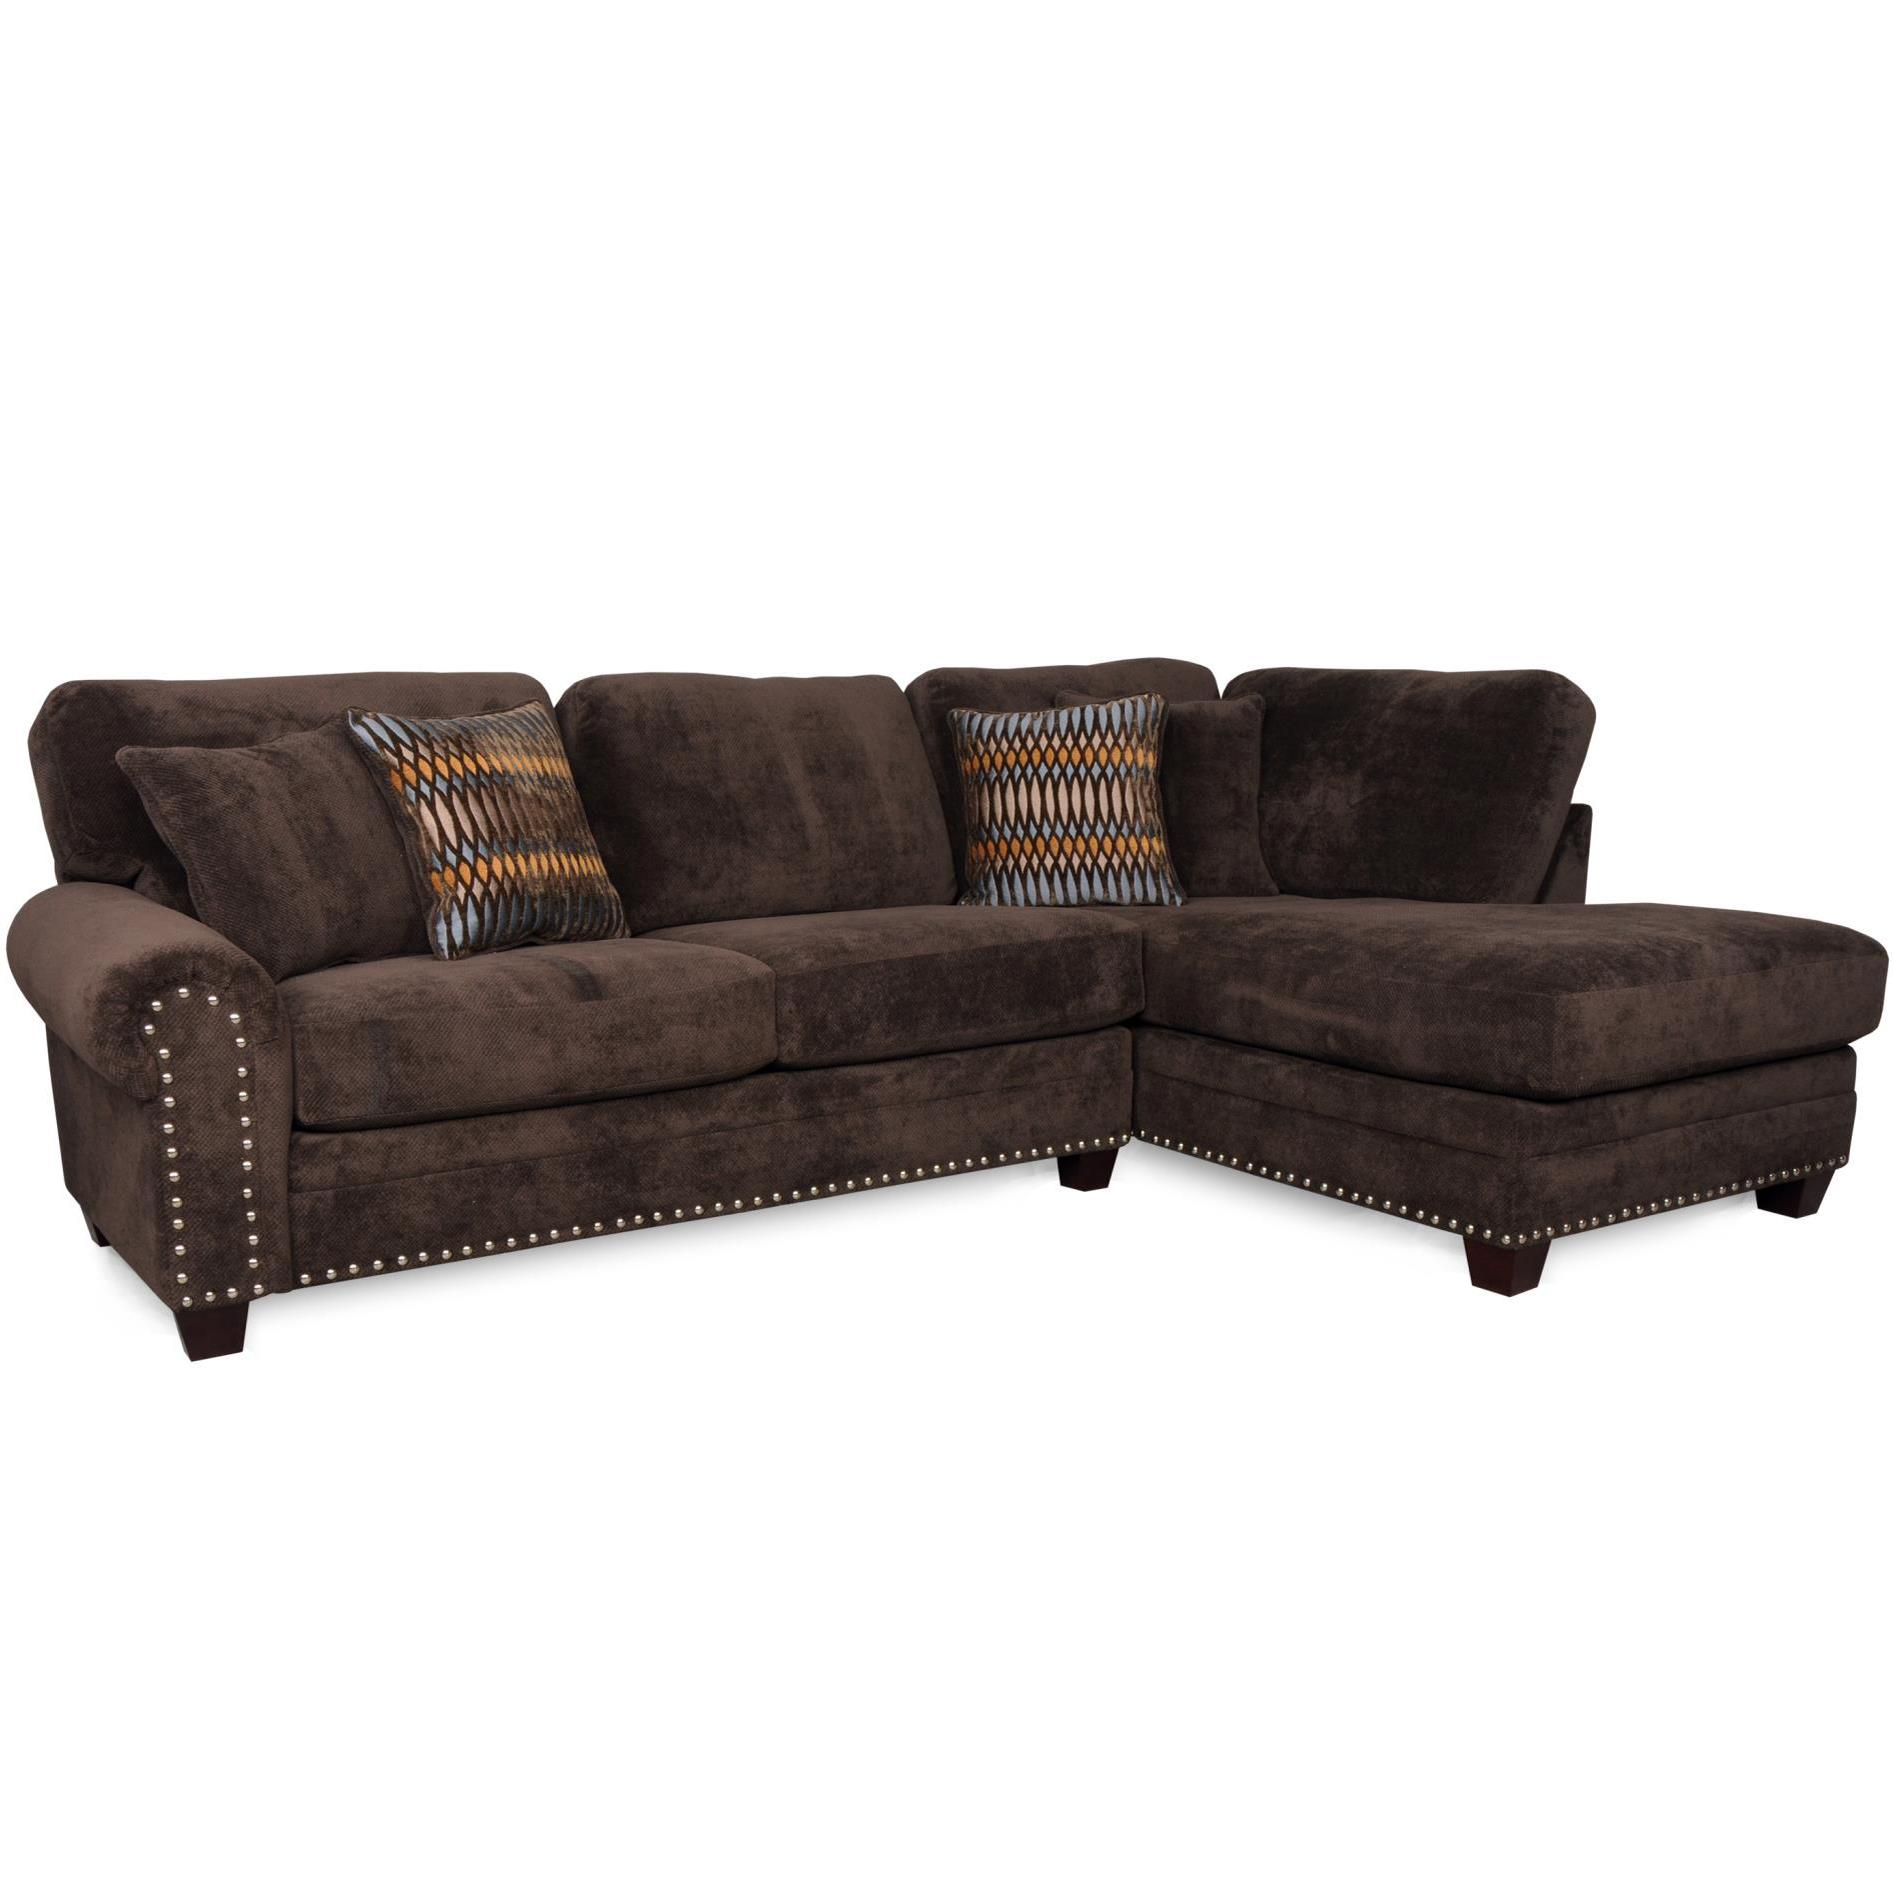 Albany 8648 Collection Casual Sectional - Item Number: 8648-67+61-Bigo Chocolate